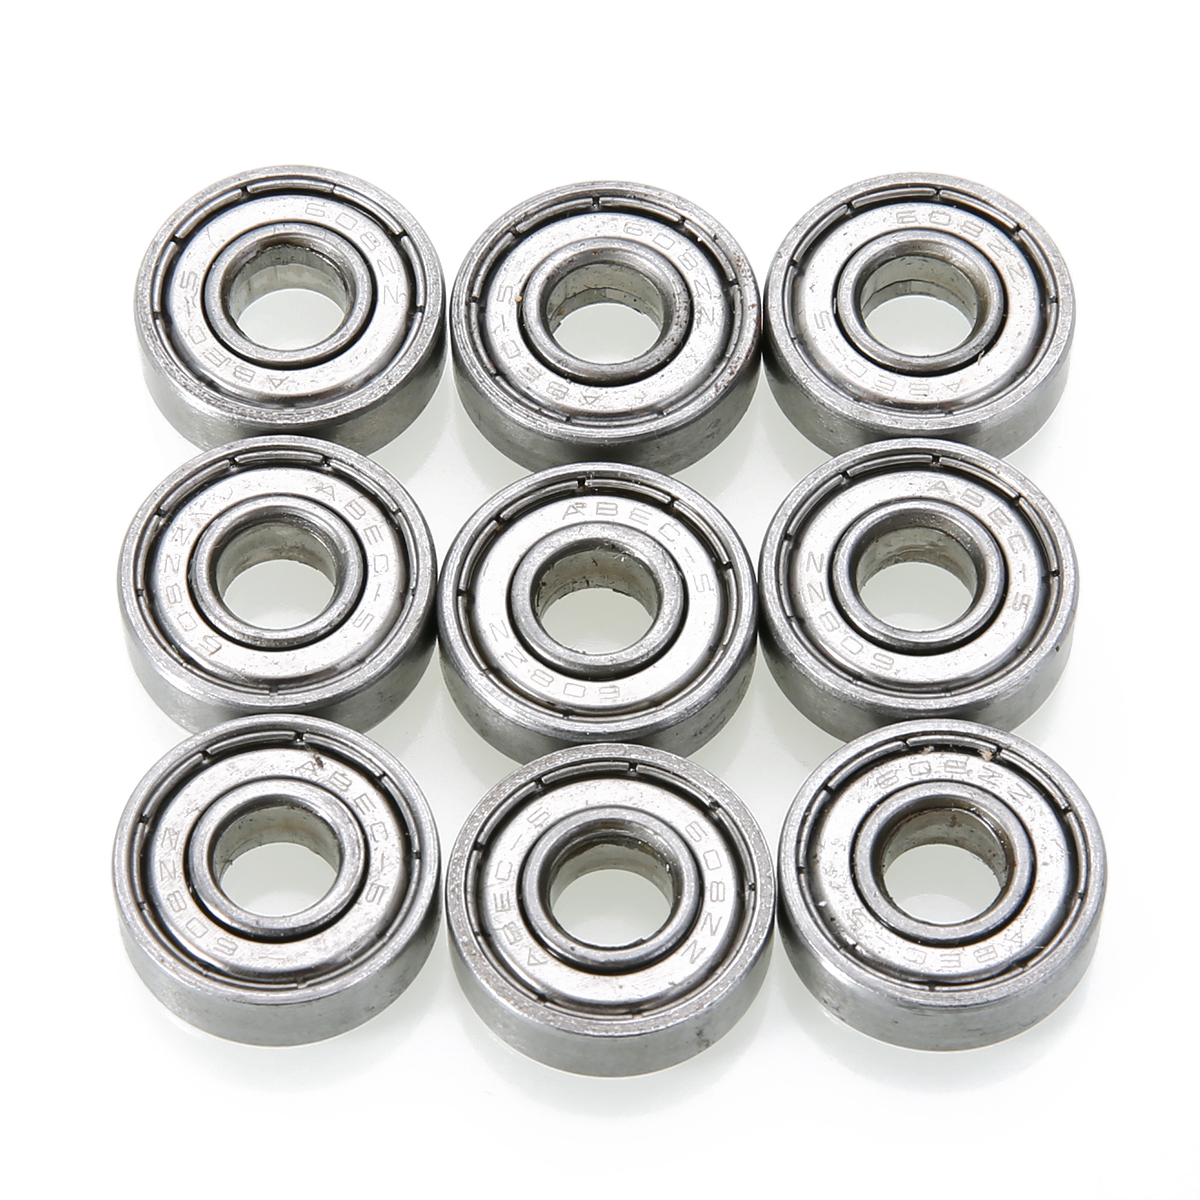 10pcs 608zz Deep Groove Bearing Steel Ball Bearings With Grease For Skateboard Roller Blade Scooter Inline Skating Mayitr 6 5 adult electric scooter hoverboard skateboard overboard smart balance skateboard balance board giroskuter or oxboard